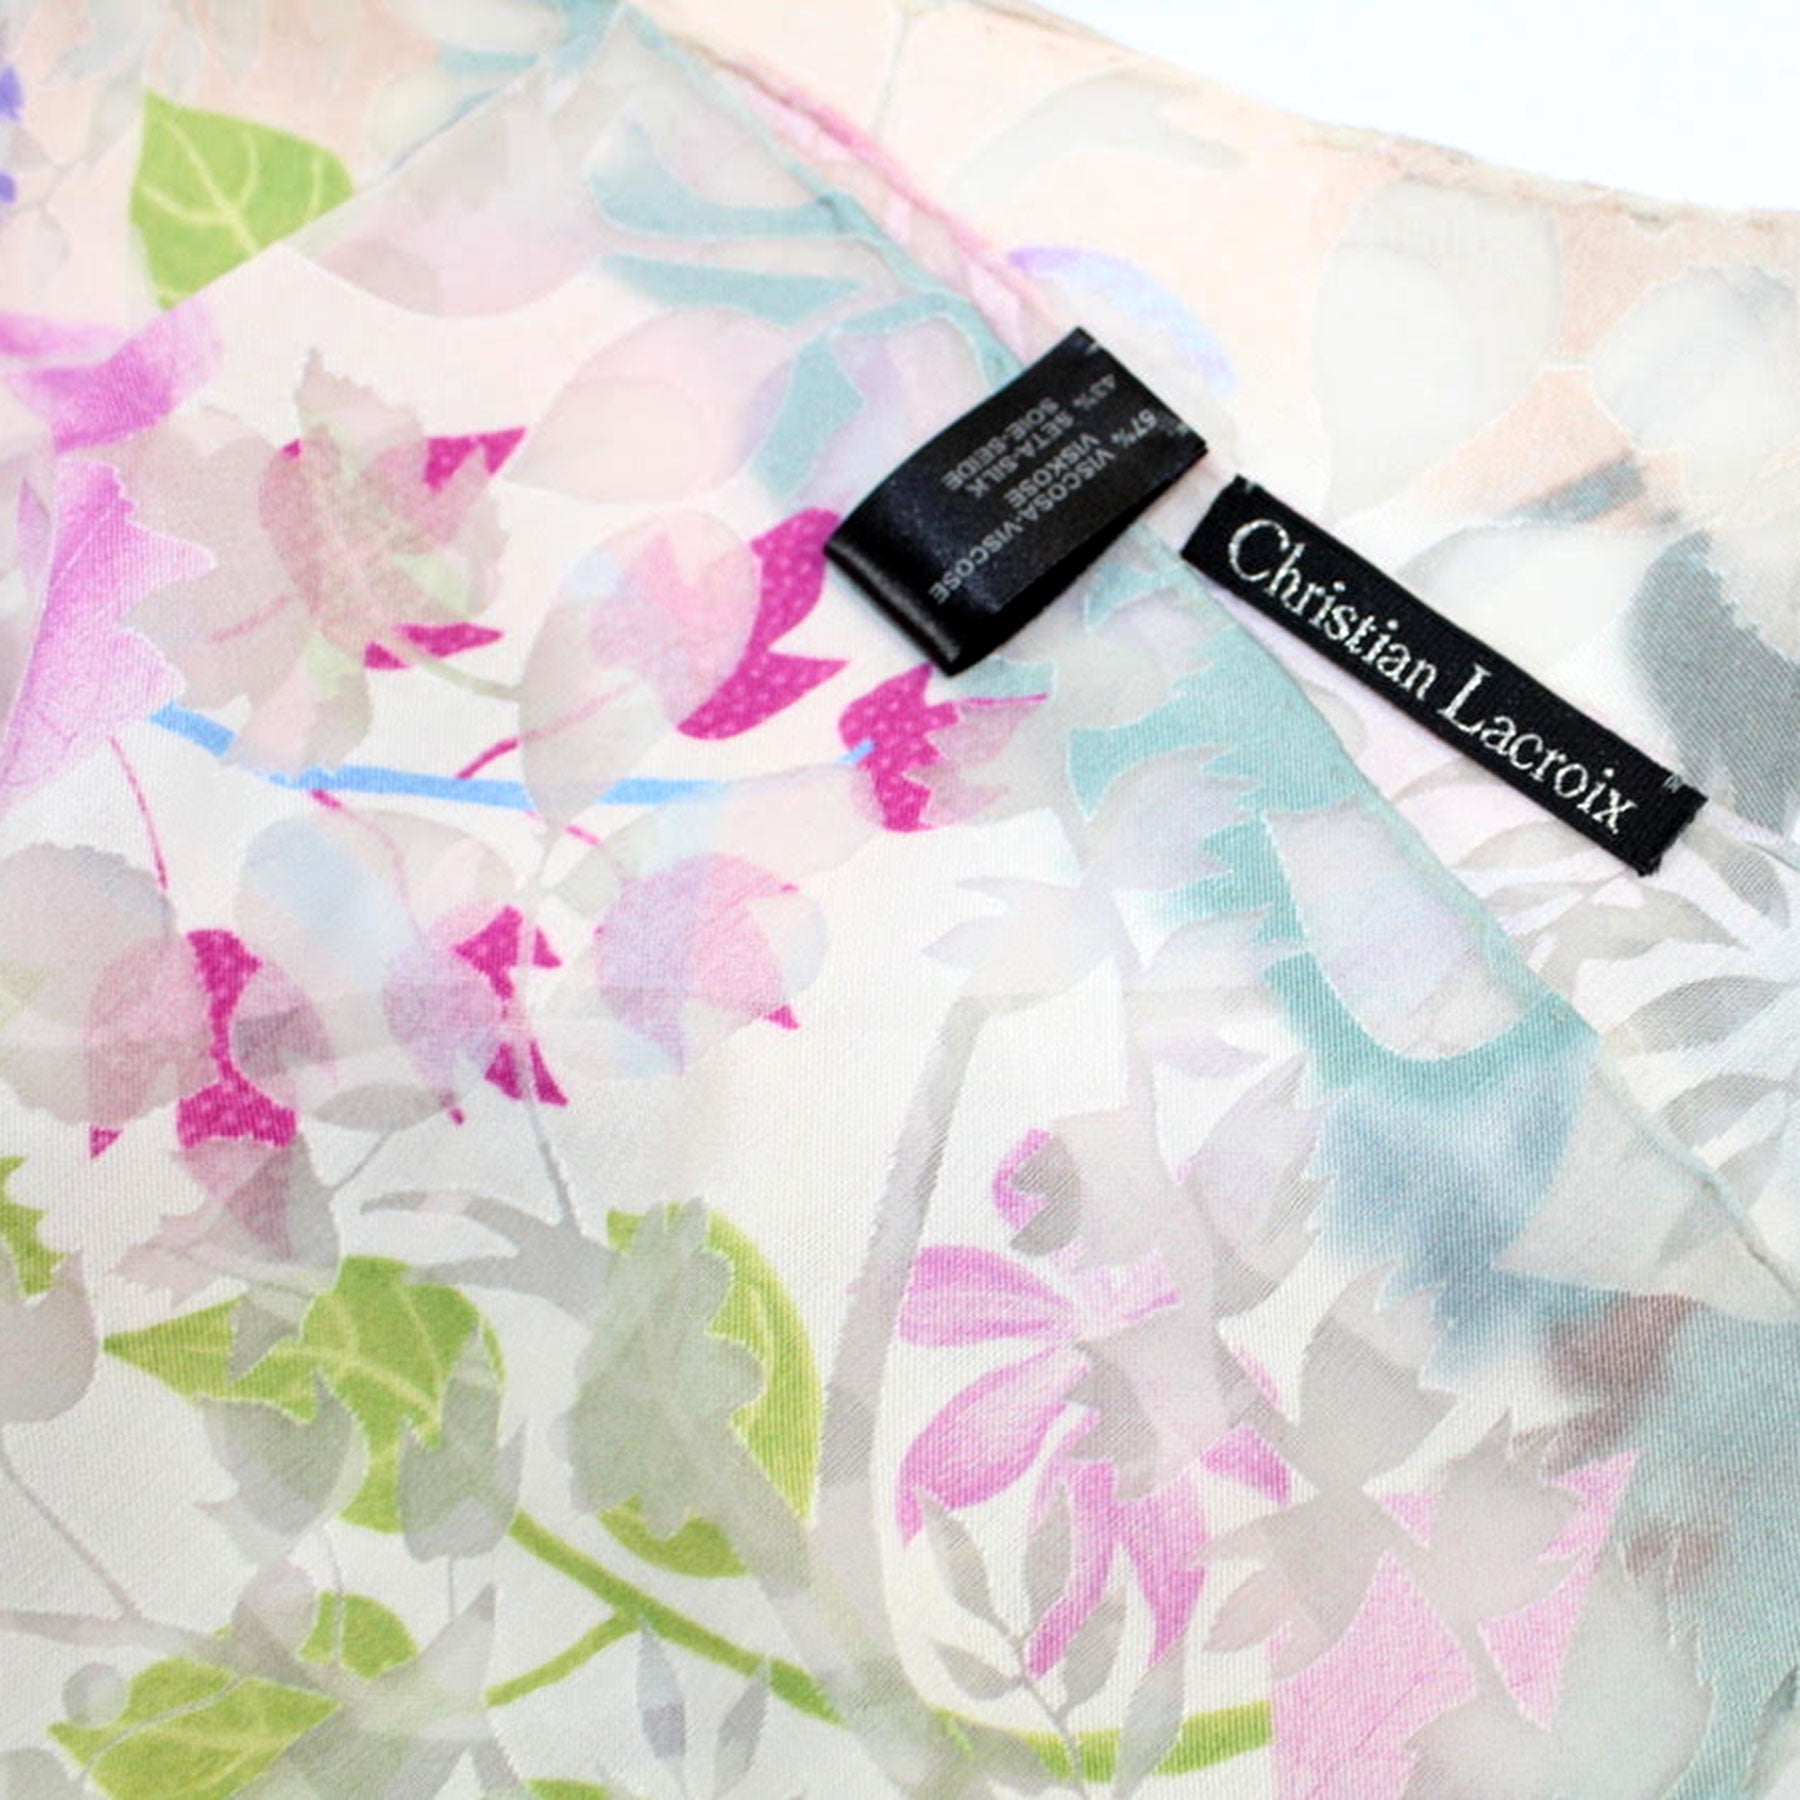 Christian Lacroix Scarf 20 Ans Design Cream Pink Turquoise Floral - Large Twill Silk Square Scarf